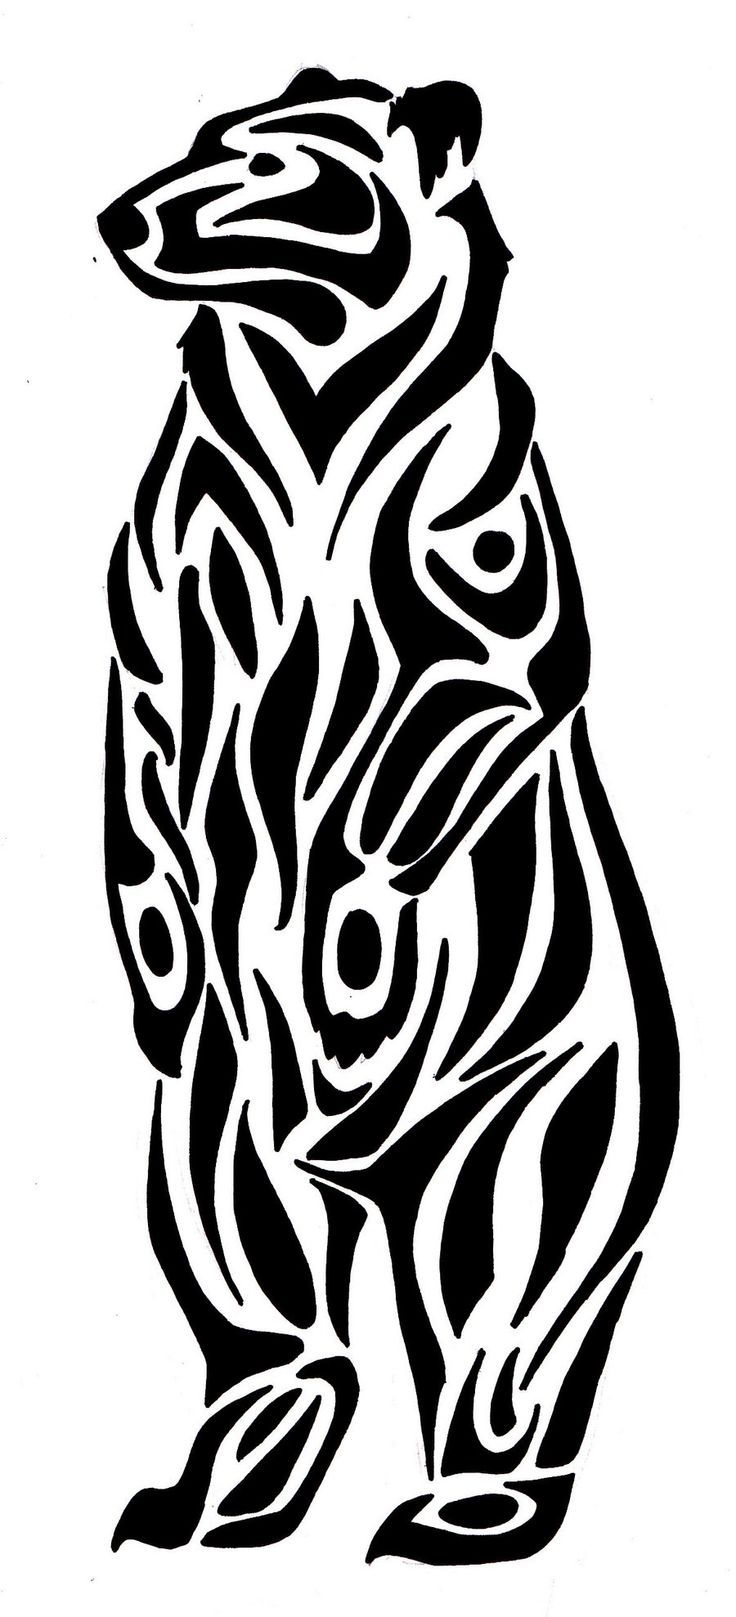 native american drawings of bears google search bears pinterest 1302 project 1. Black Bedroom Furniture Sets. Home Design Ideas